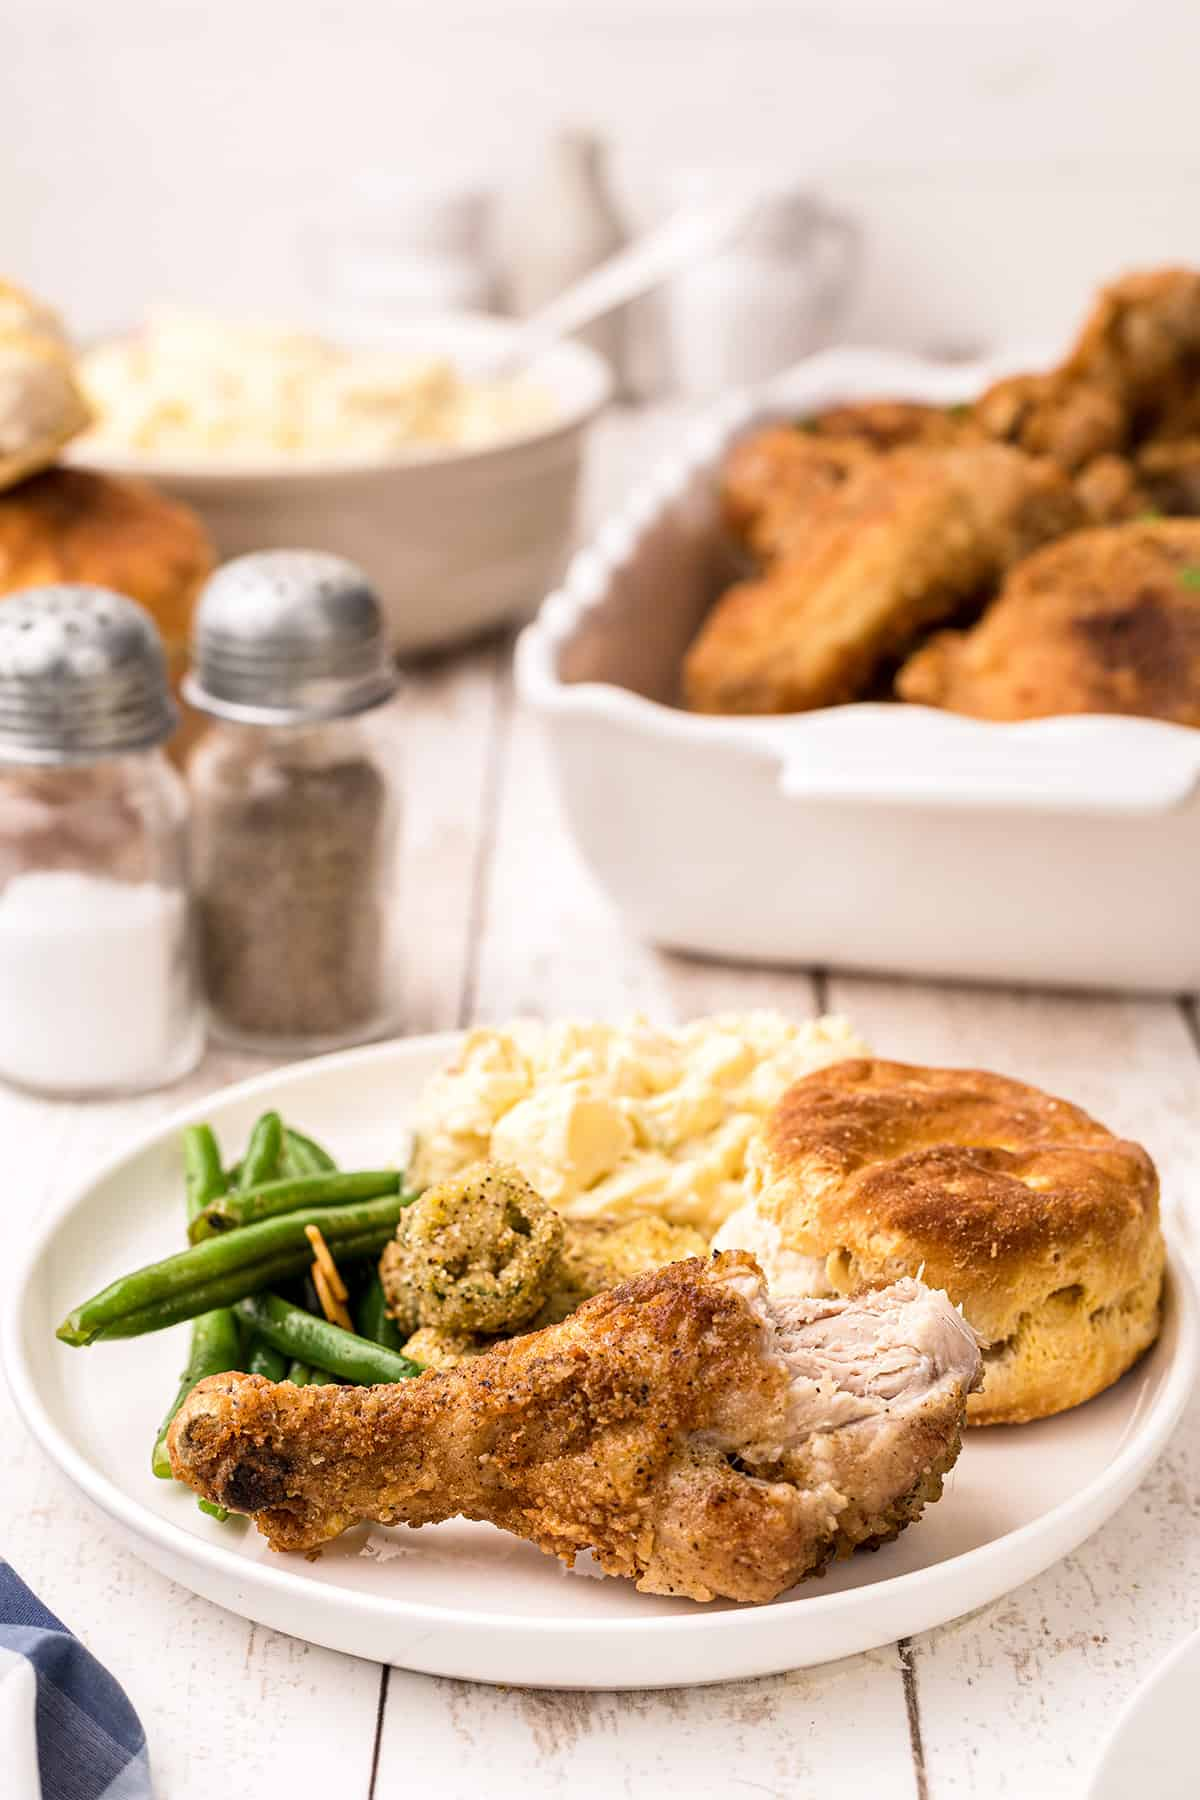 Fried chicken leg on a white dinner plate with green beans, okra, potatoes, and biscuits.